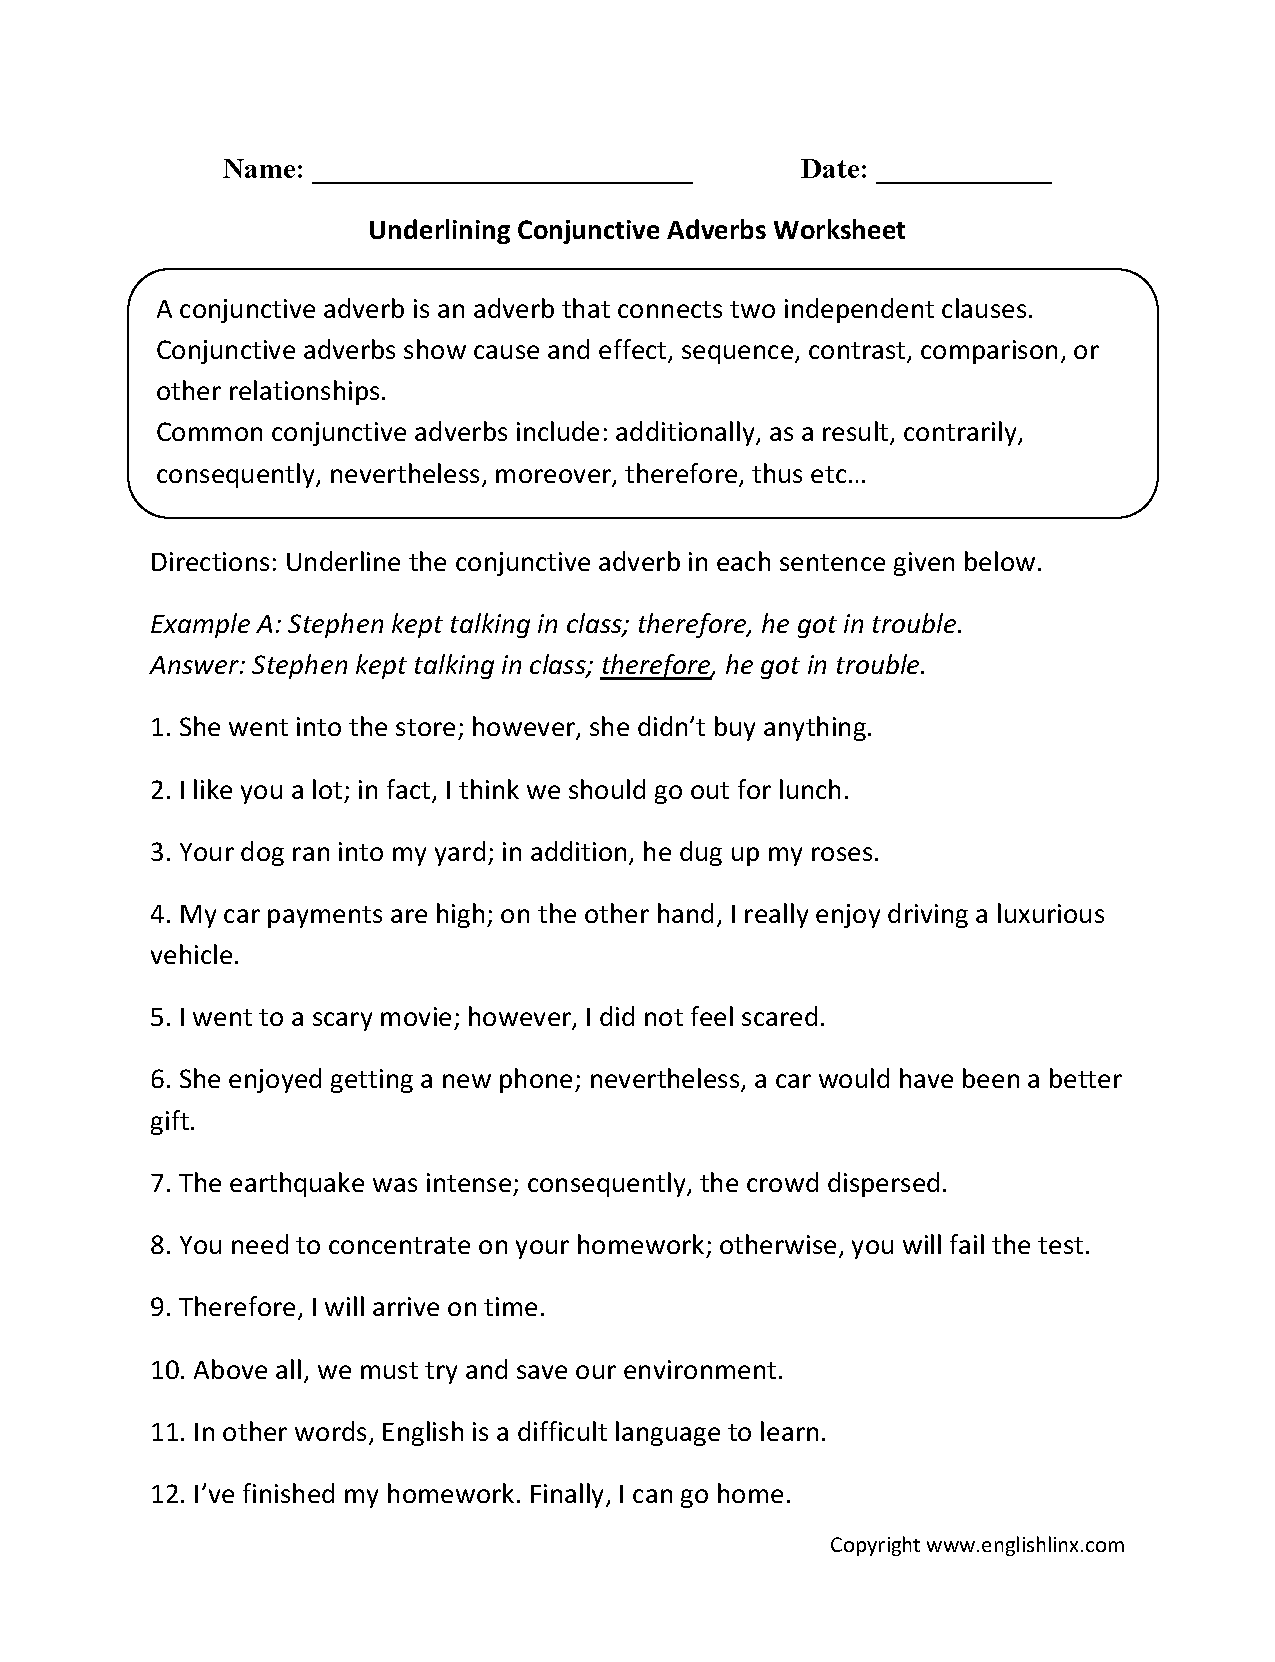 Aldiablosus  Pleasing Englishlinxcom  Conjunctions Worksheets With Inspiring Worksheet With Comely Critical Thinking Printable Worksheets Also Less Than Greater Than Equal To Worksheets In Addition Photosynthesis Equation Worksheet And Math Expressions Worksheets As Well As Bill Nye Life Cycles Worksheet Additionally Math Worksheet For Th Graders From Englishlinxcom With Aldiablosus  Inspiring Englishlinxcom  Conjunctions Worksheets With Comely Worksheet And Pleasing Critical Thinking Printable Worksheets Also Less Than Greater Than Equal To Worksheets In Addition Photosynthesis Equation Worksheet From Englishlinxcom